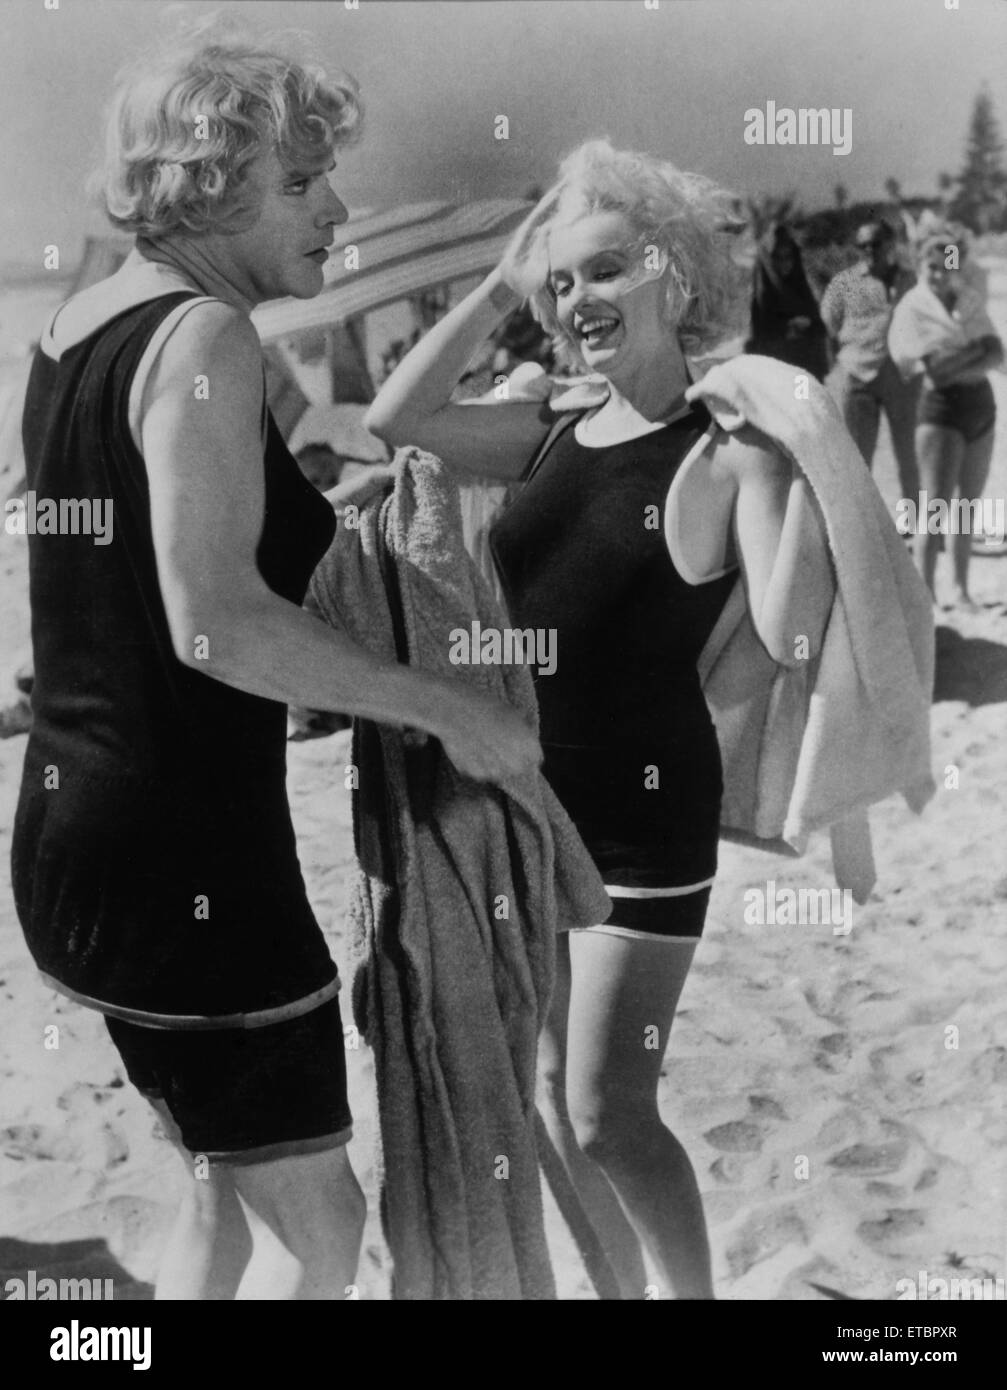 Tony Curtis, Marilyn Monroe, on-set of the Film 'Some Like it Hot', 1959 - Stock Image